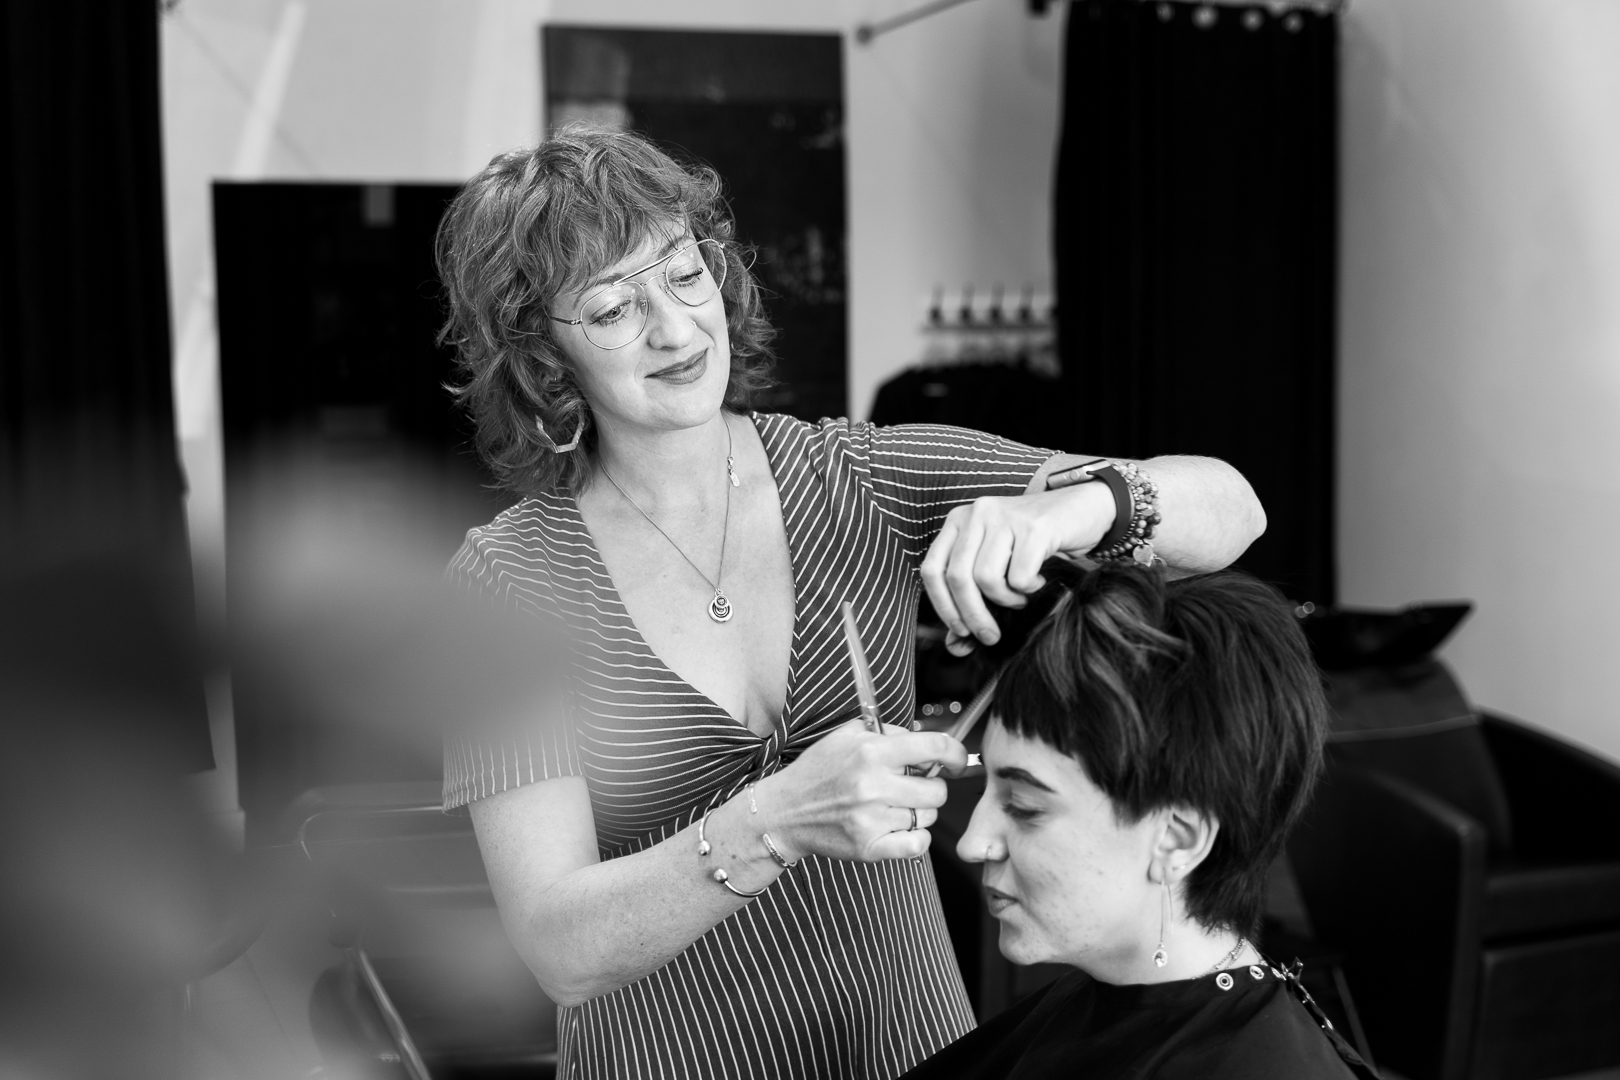 Amy  Amy has been a stylist in Edmonton since 1997. She has the great fortune of spending her days doing what she loves most, with the greatest group of people she knows. She is currently a Diamond.KEY educator for Kevin.Murphy, where she takes great pleasure in sharing her love of hair.